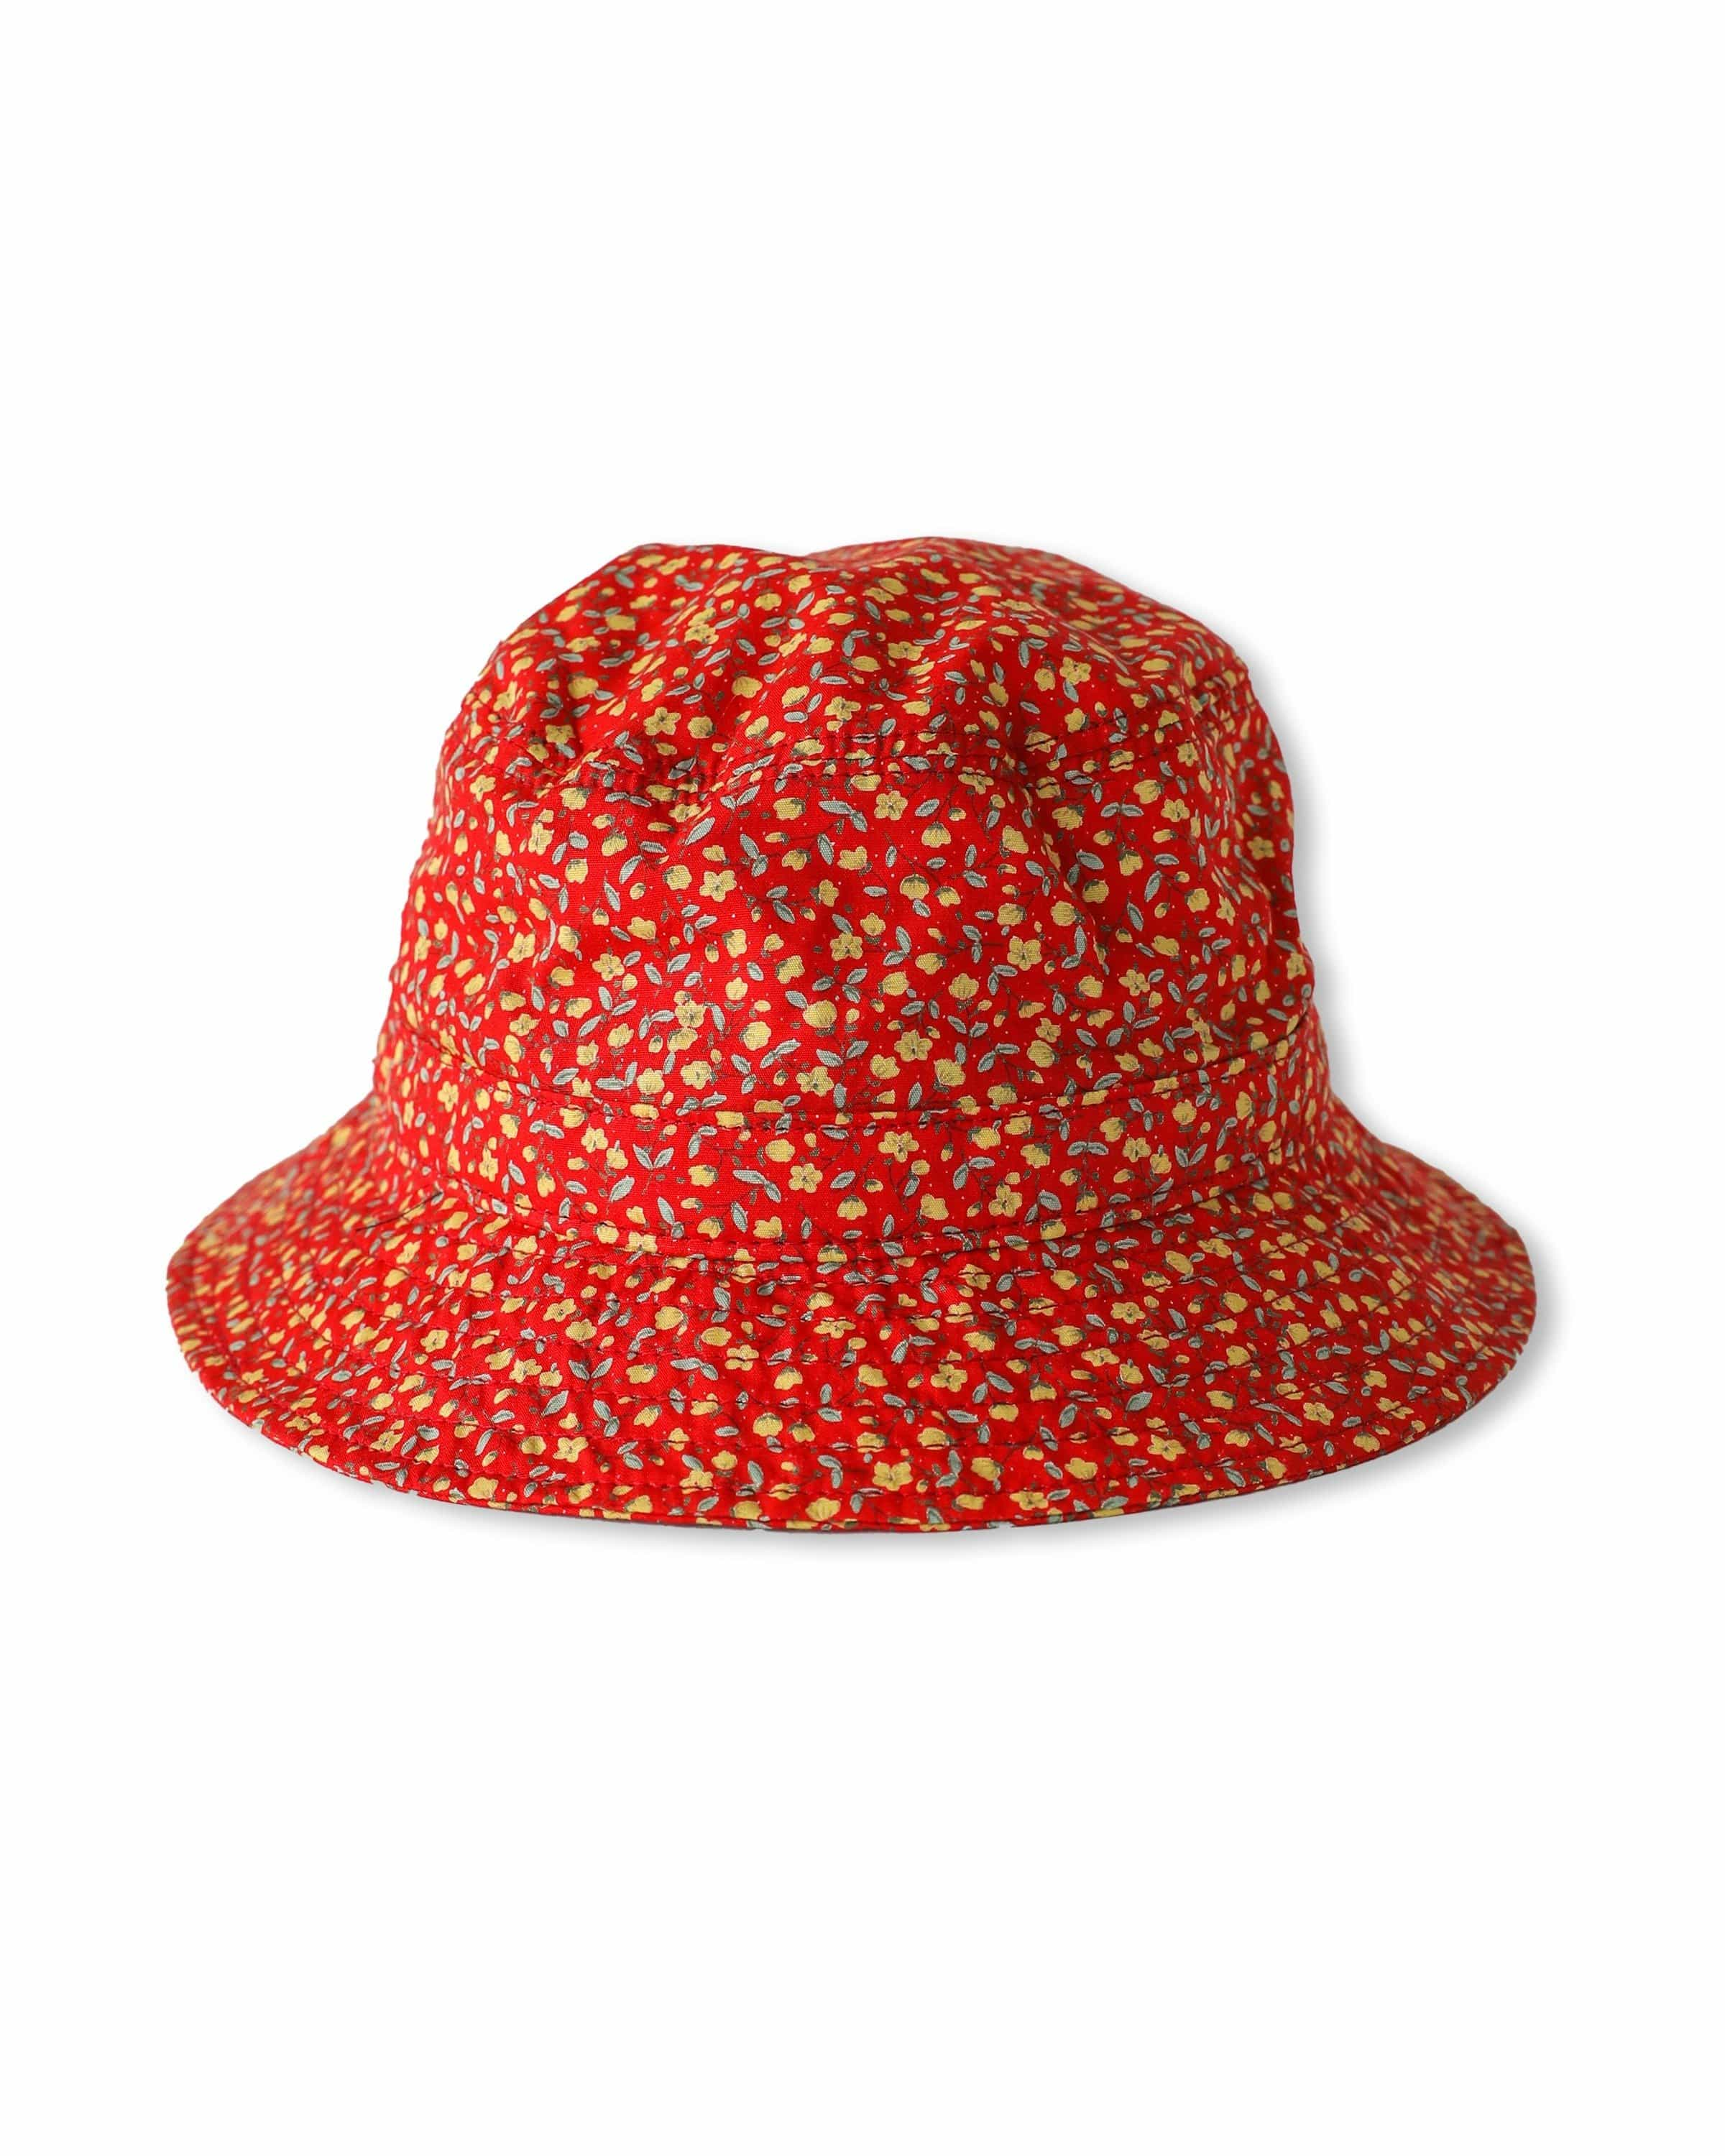 Micro Floral - Red Bucket Hat